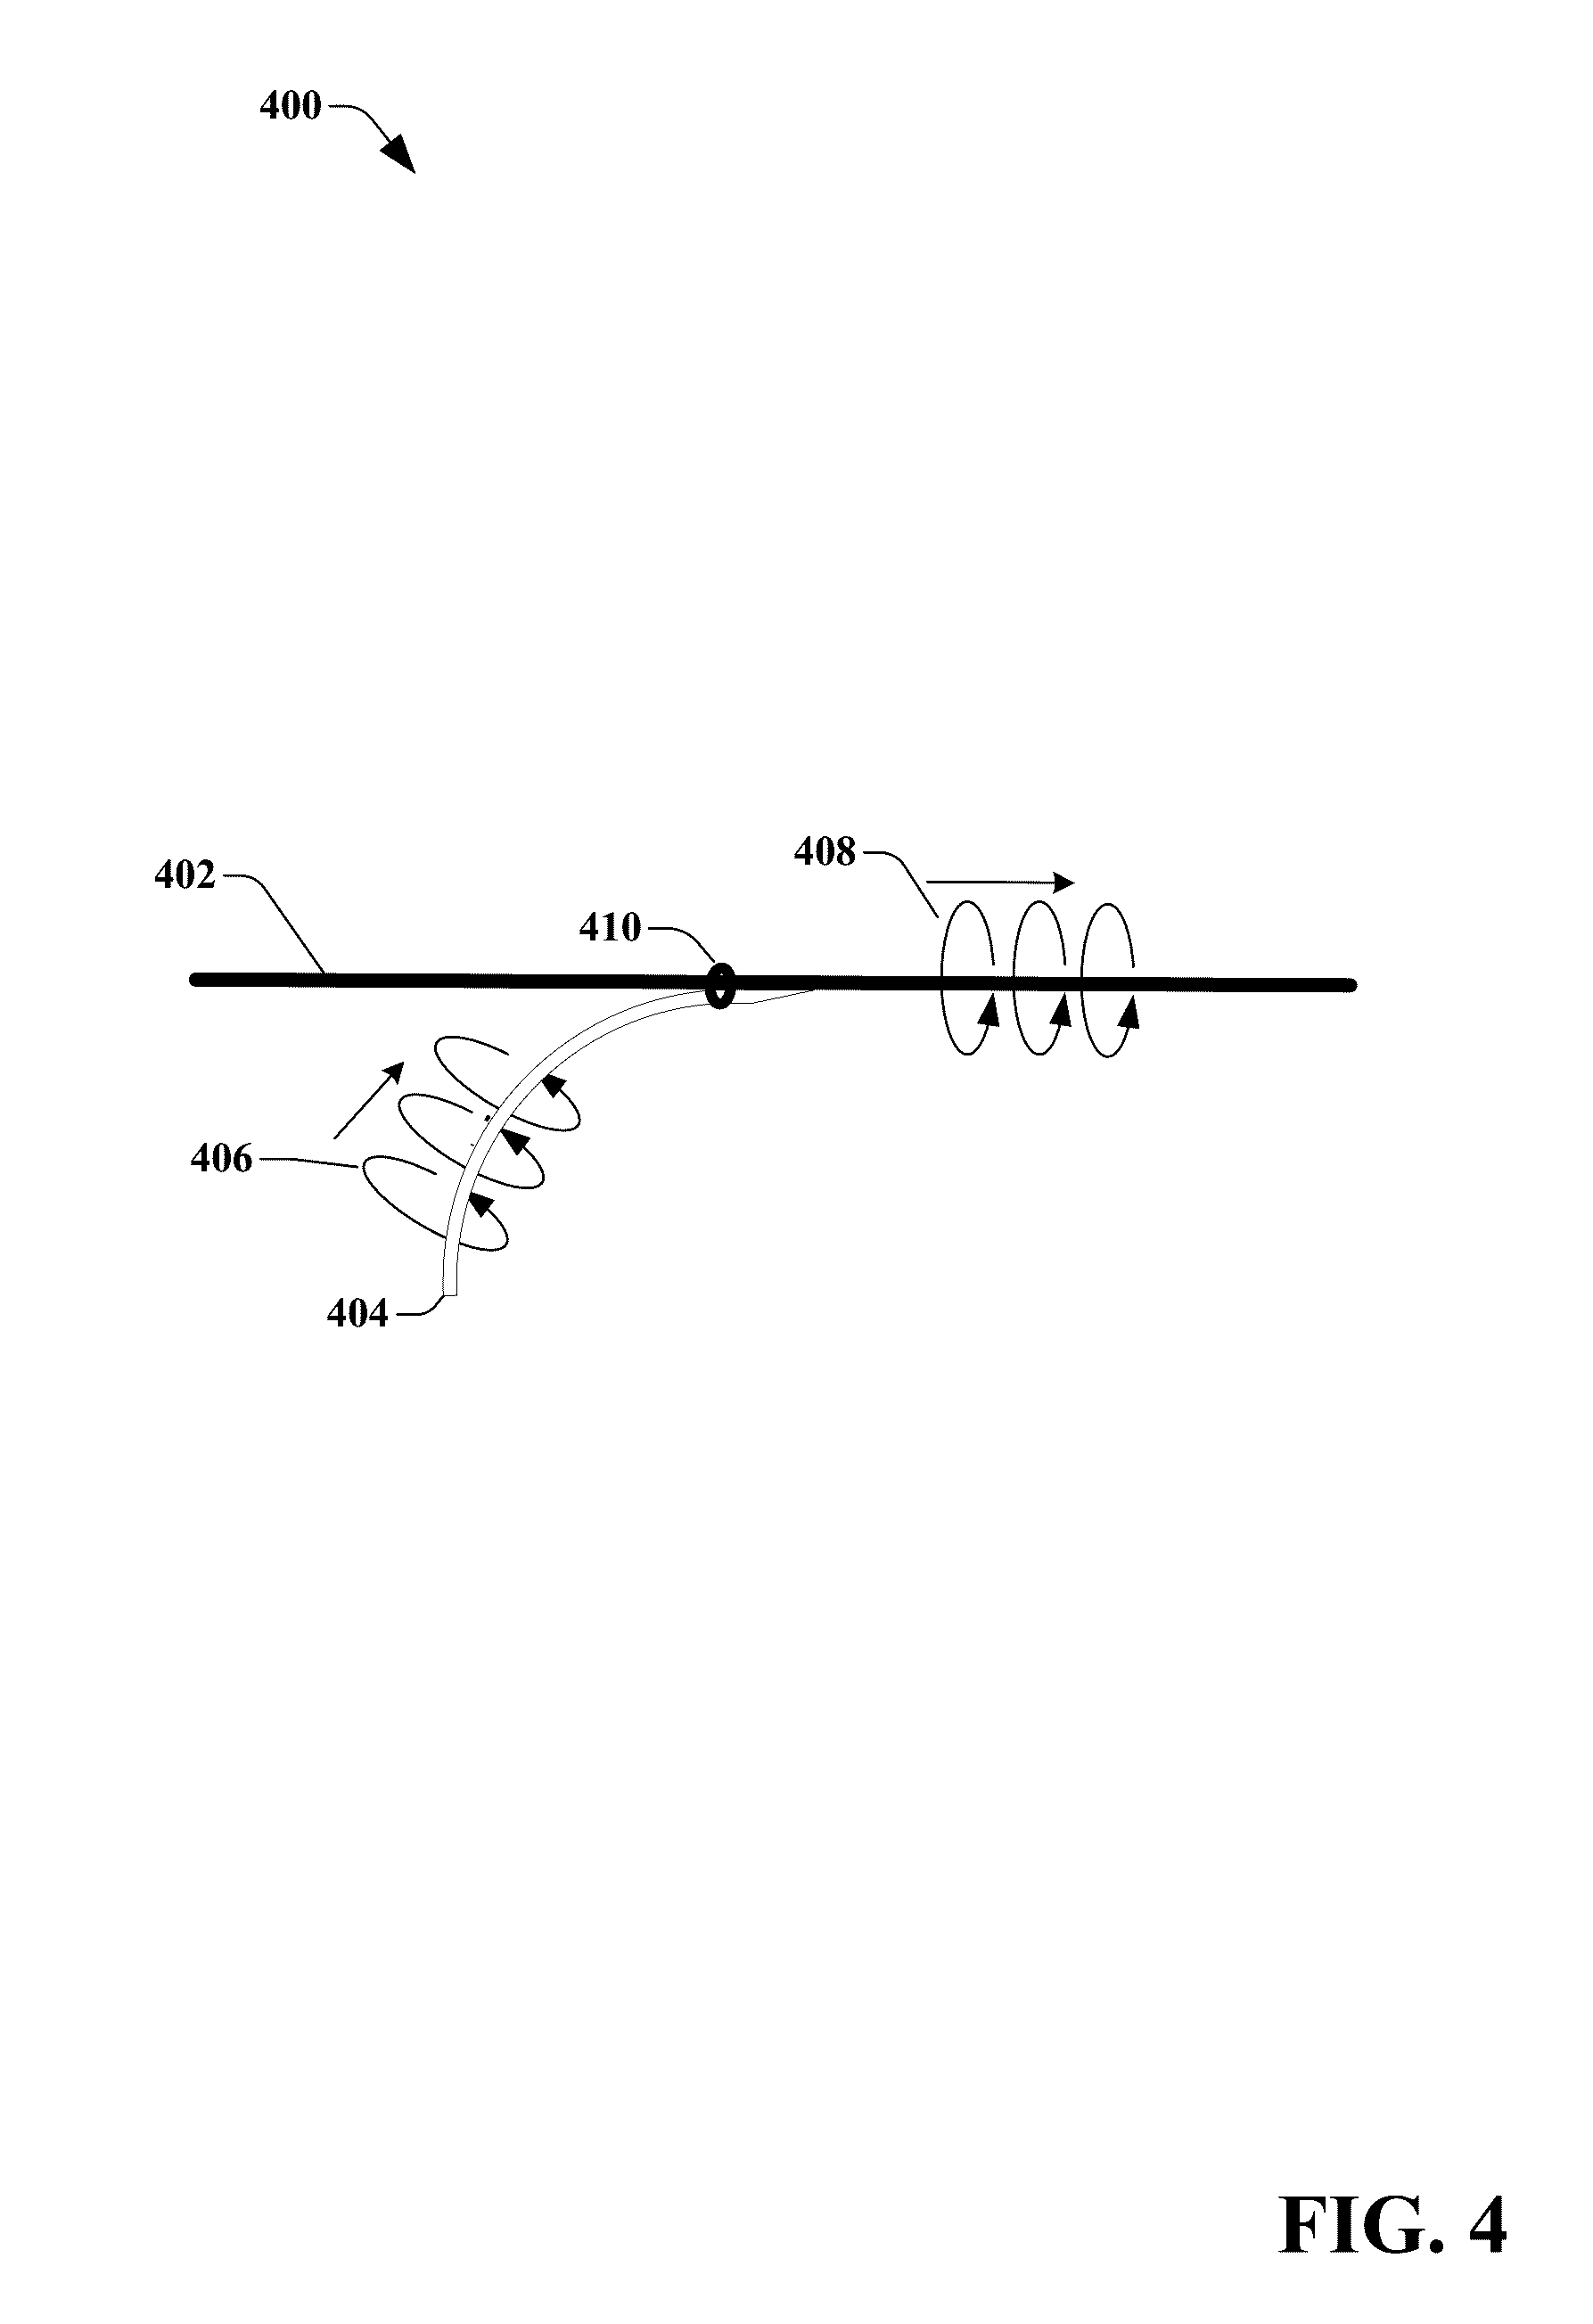 Us9571209b2 transmission device with impairment pensation and methods for use therewith patents